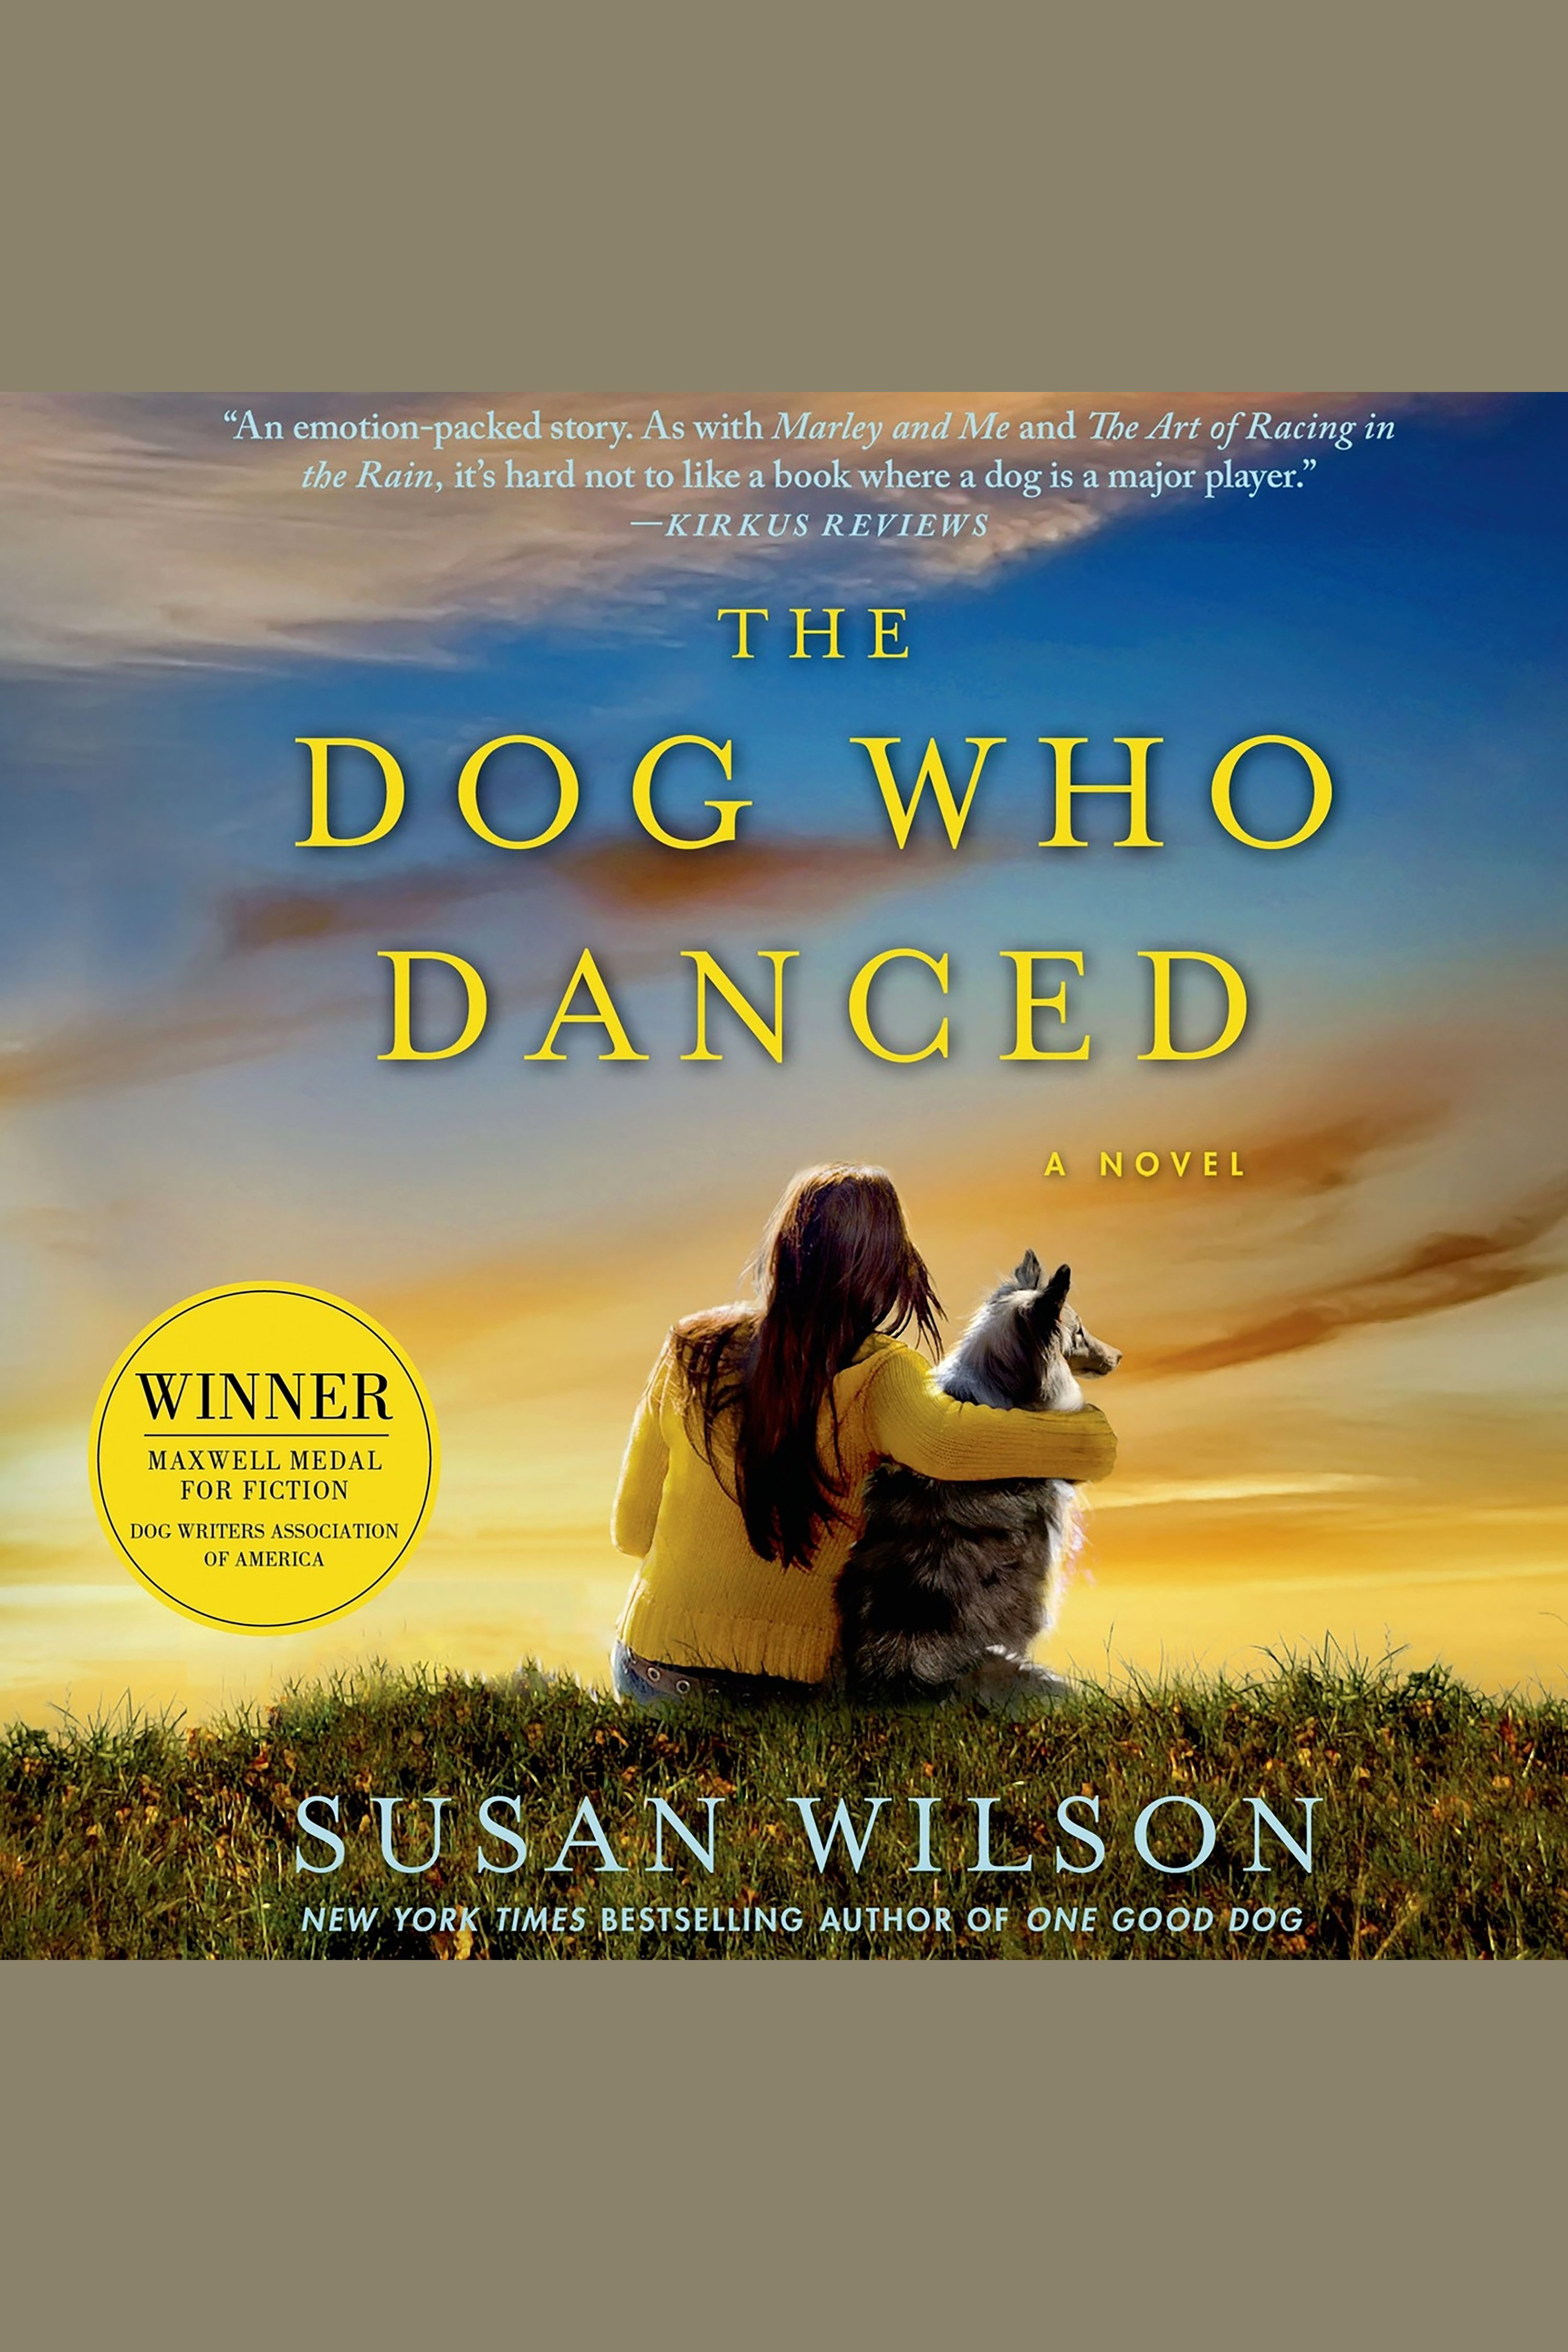 The dog who danced cover image